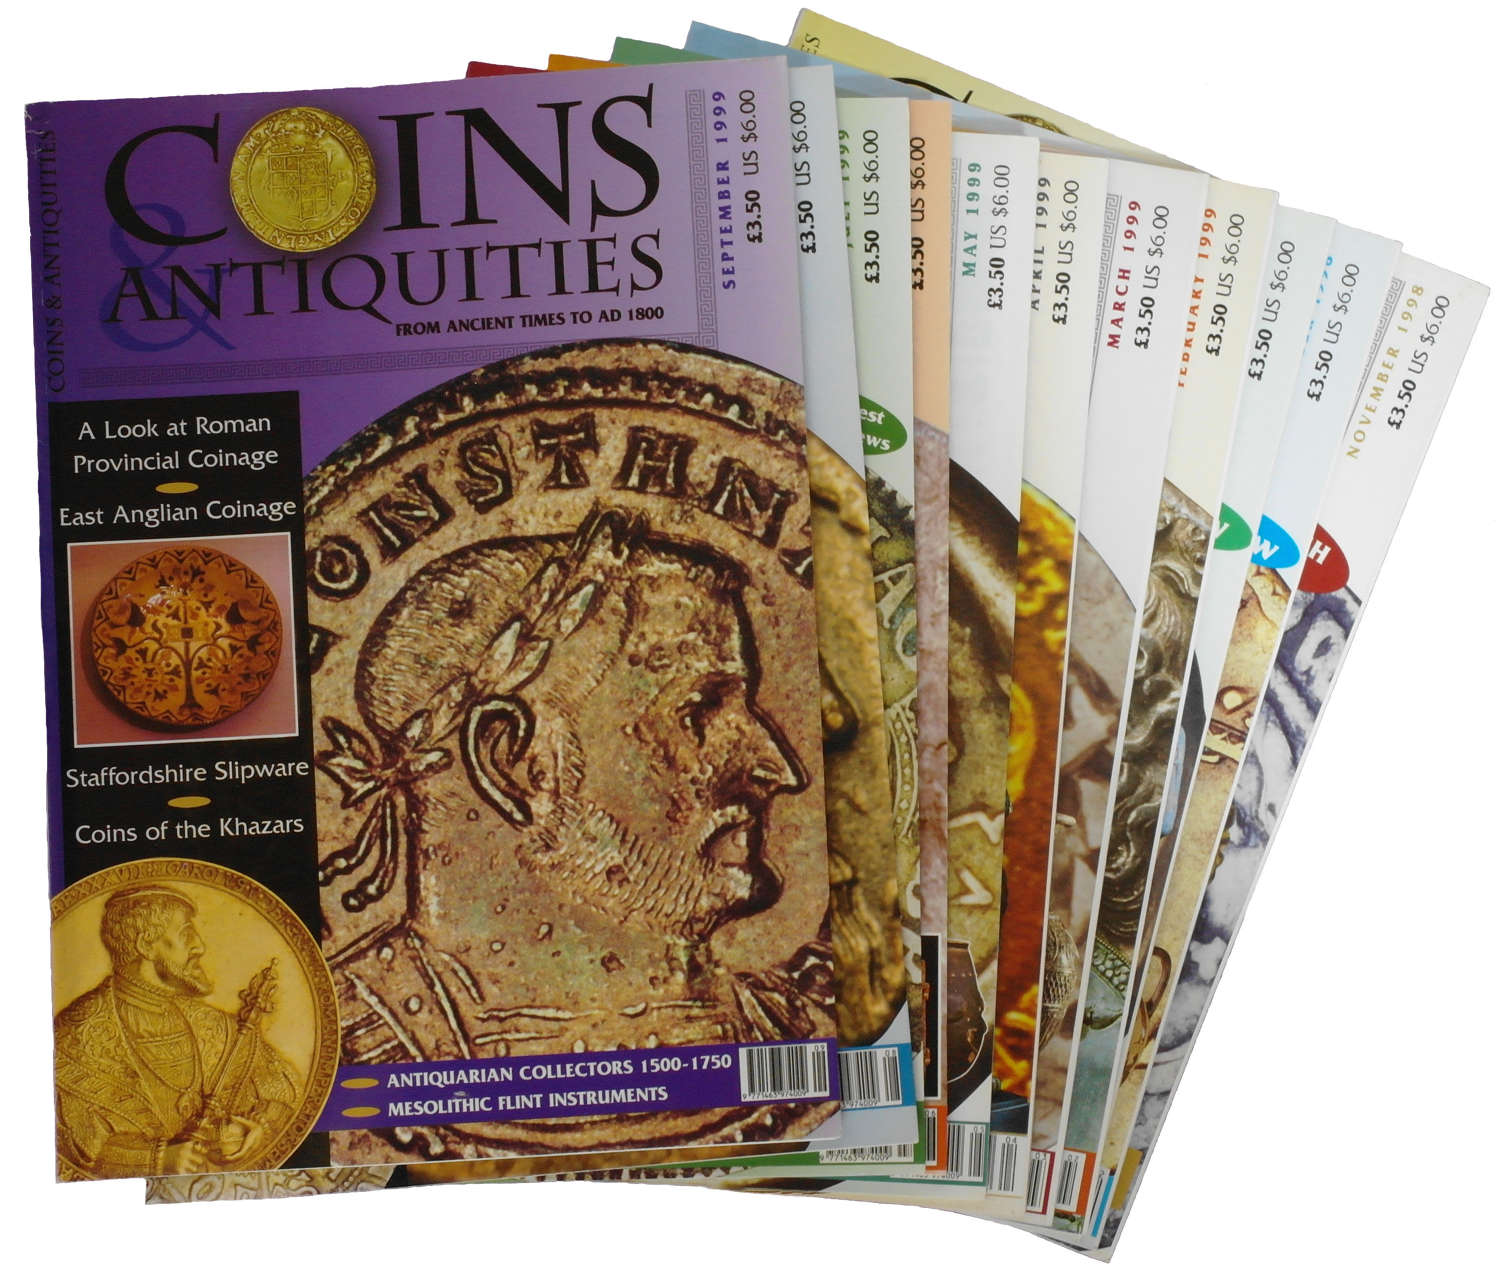 A rare complete set of 'Coins and Antiquities' magazine